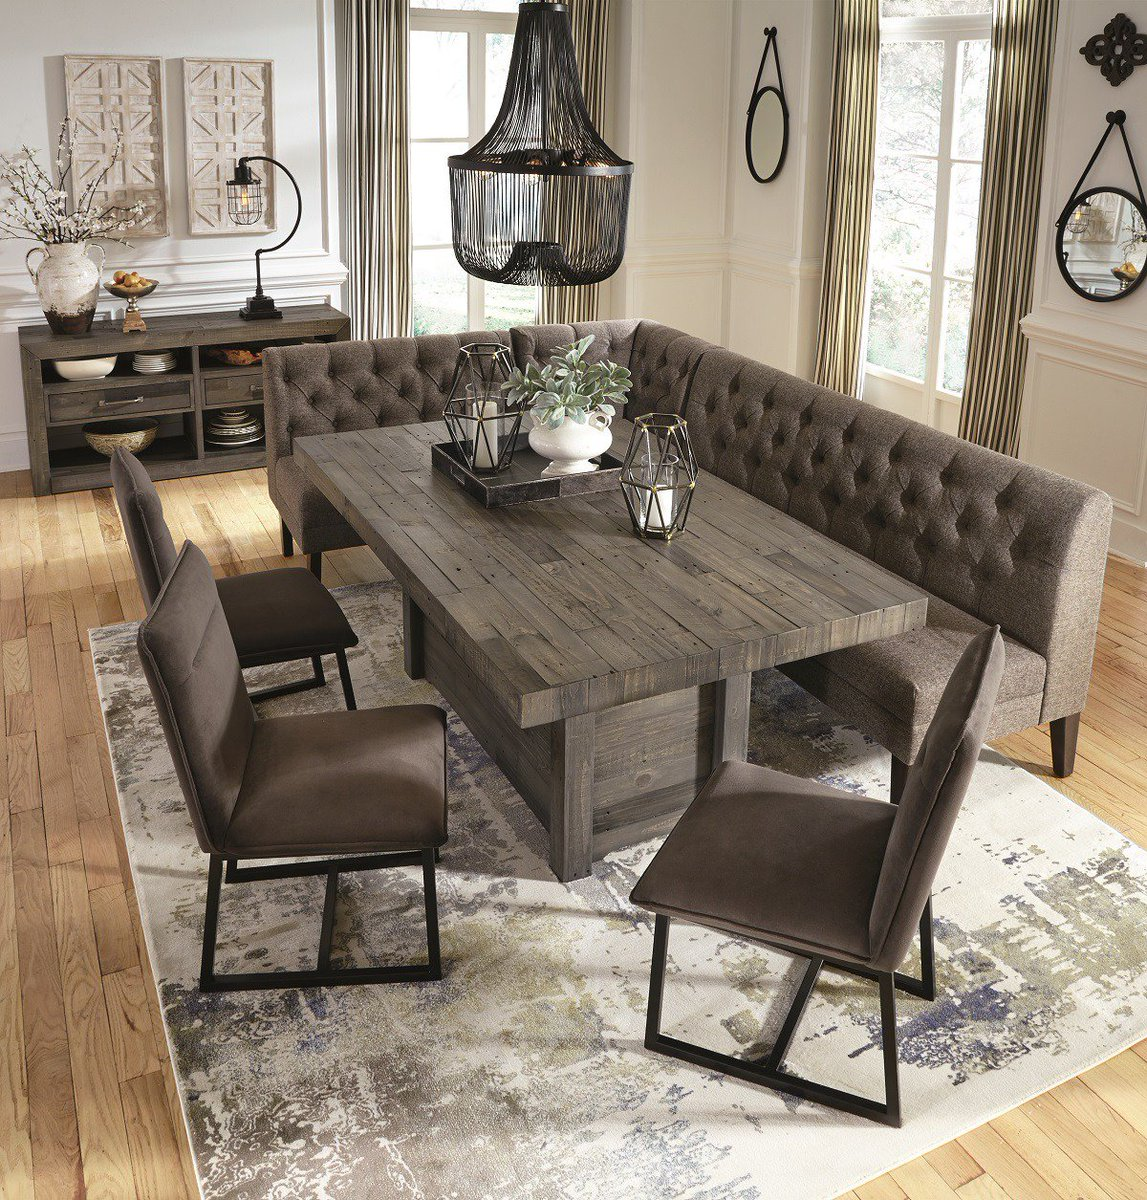 Ashley Homestore On Twitter Your Final Pick It S Gotta Be The May Flyn Dining Room Table Yup That S Right Start Off May With This Urban Farmhouse Style Favorite Mayday Https T Co Sb6lpfl8tp Https T Co Stt9wglh4k